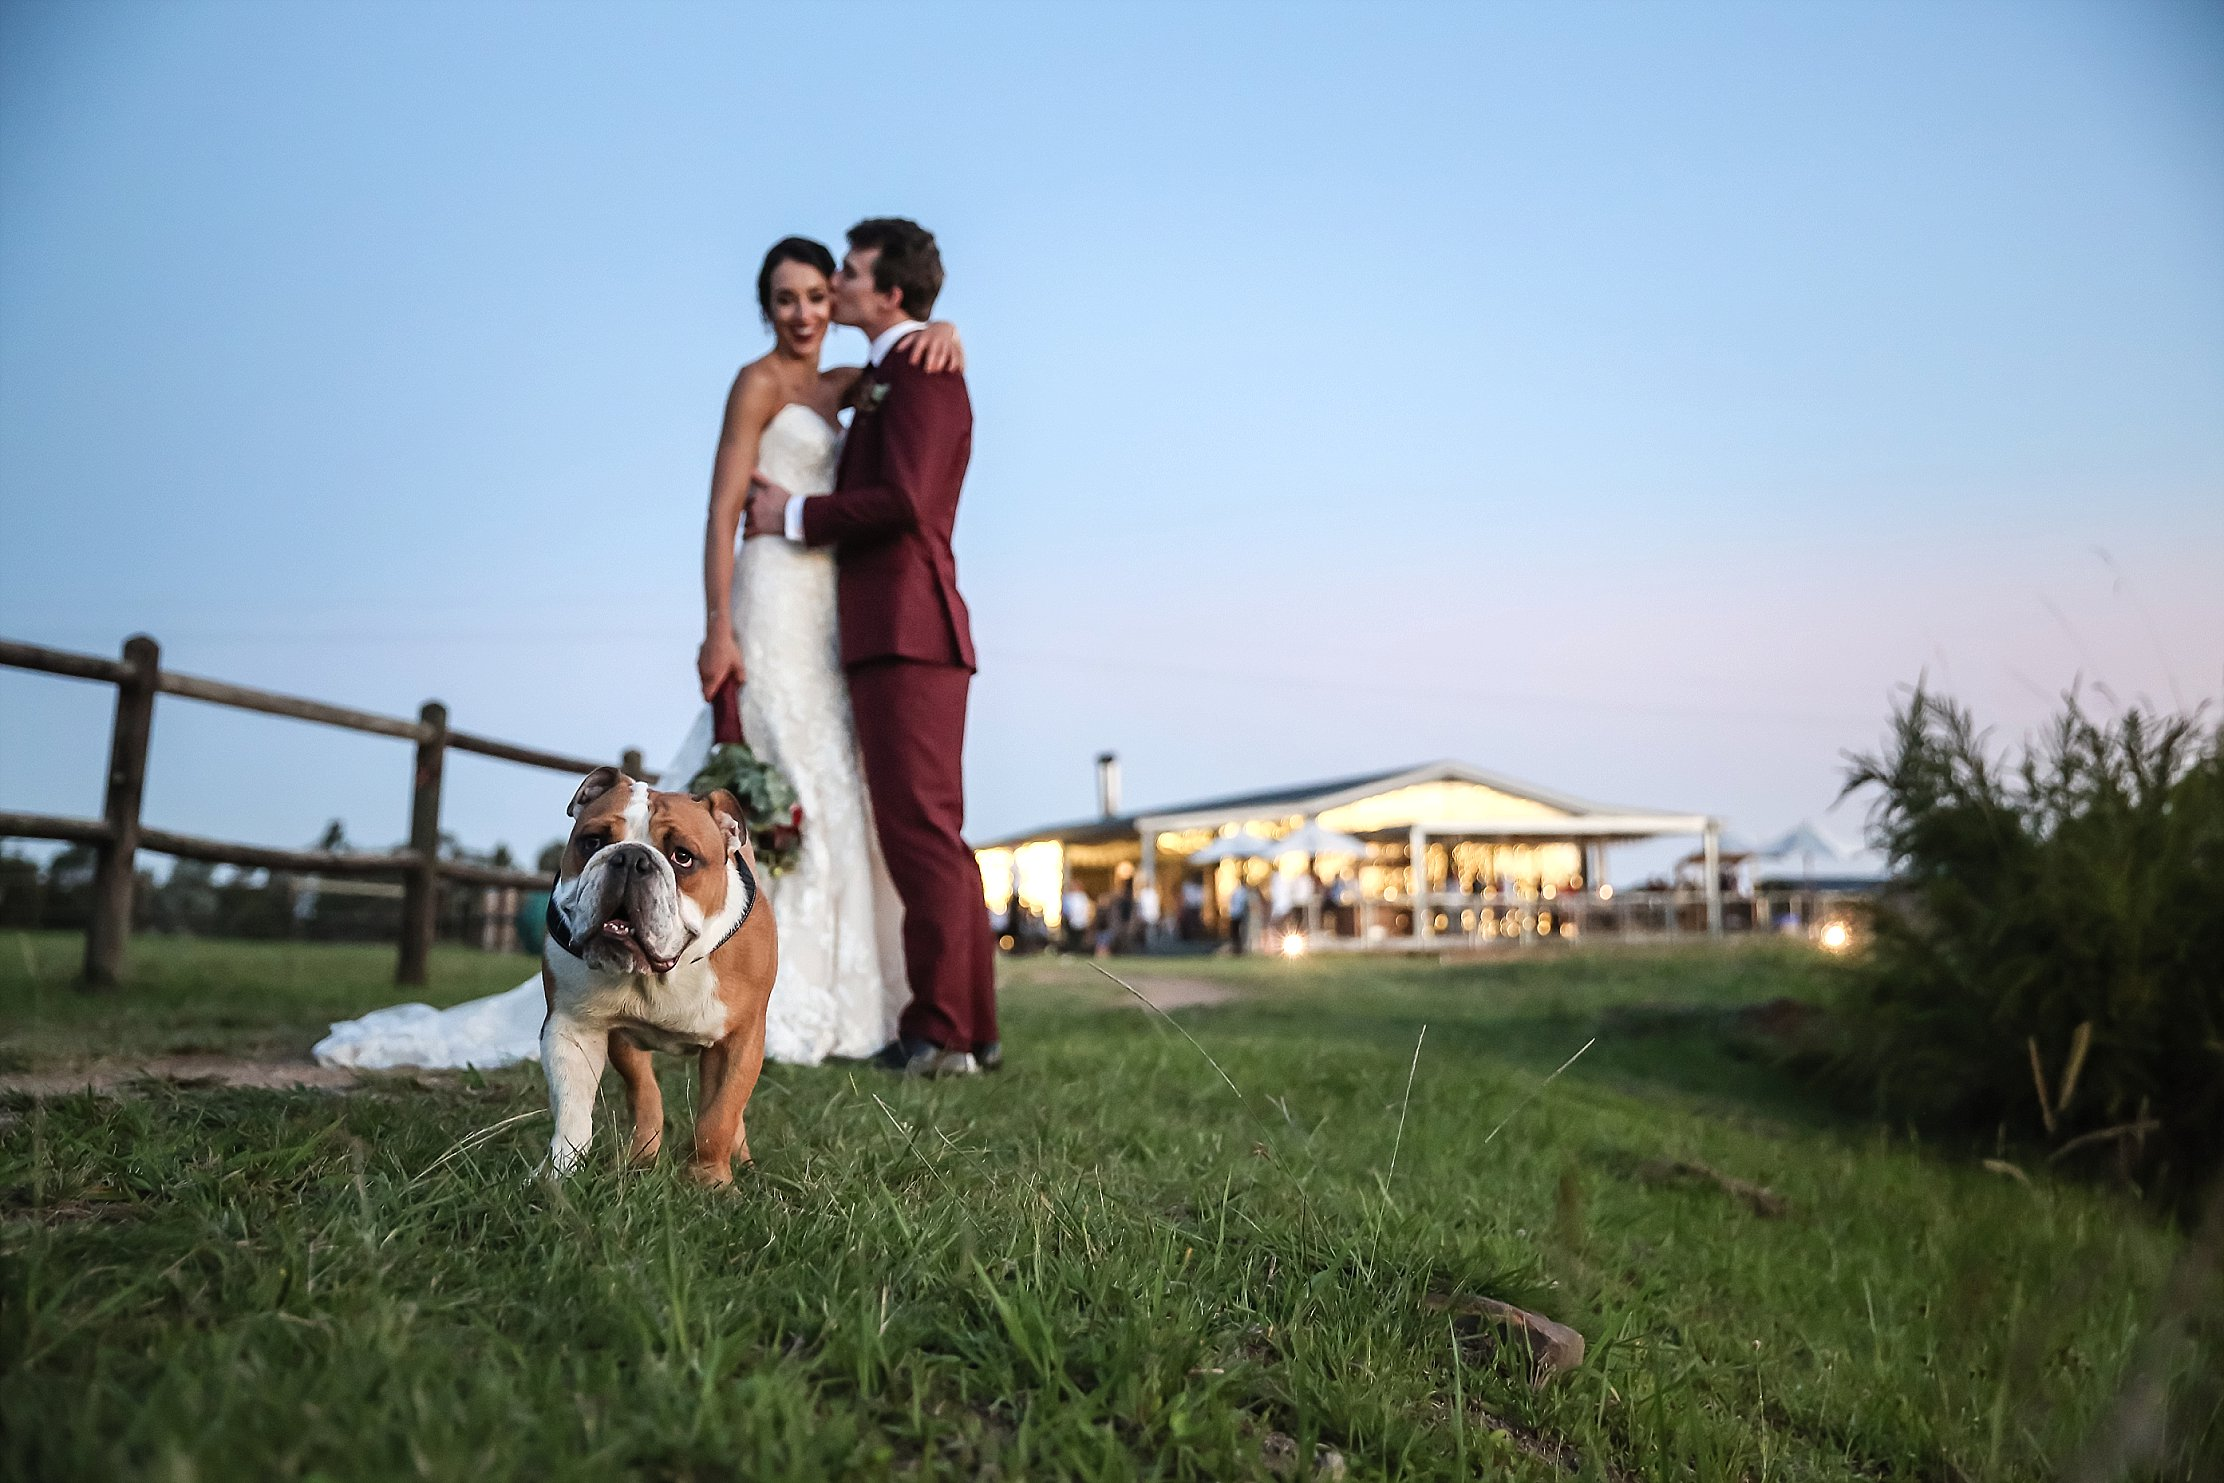 Bride and groom in Maroon suit with bulldog